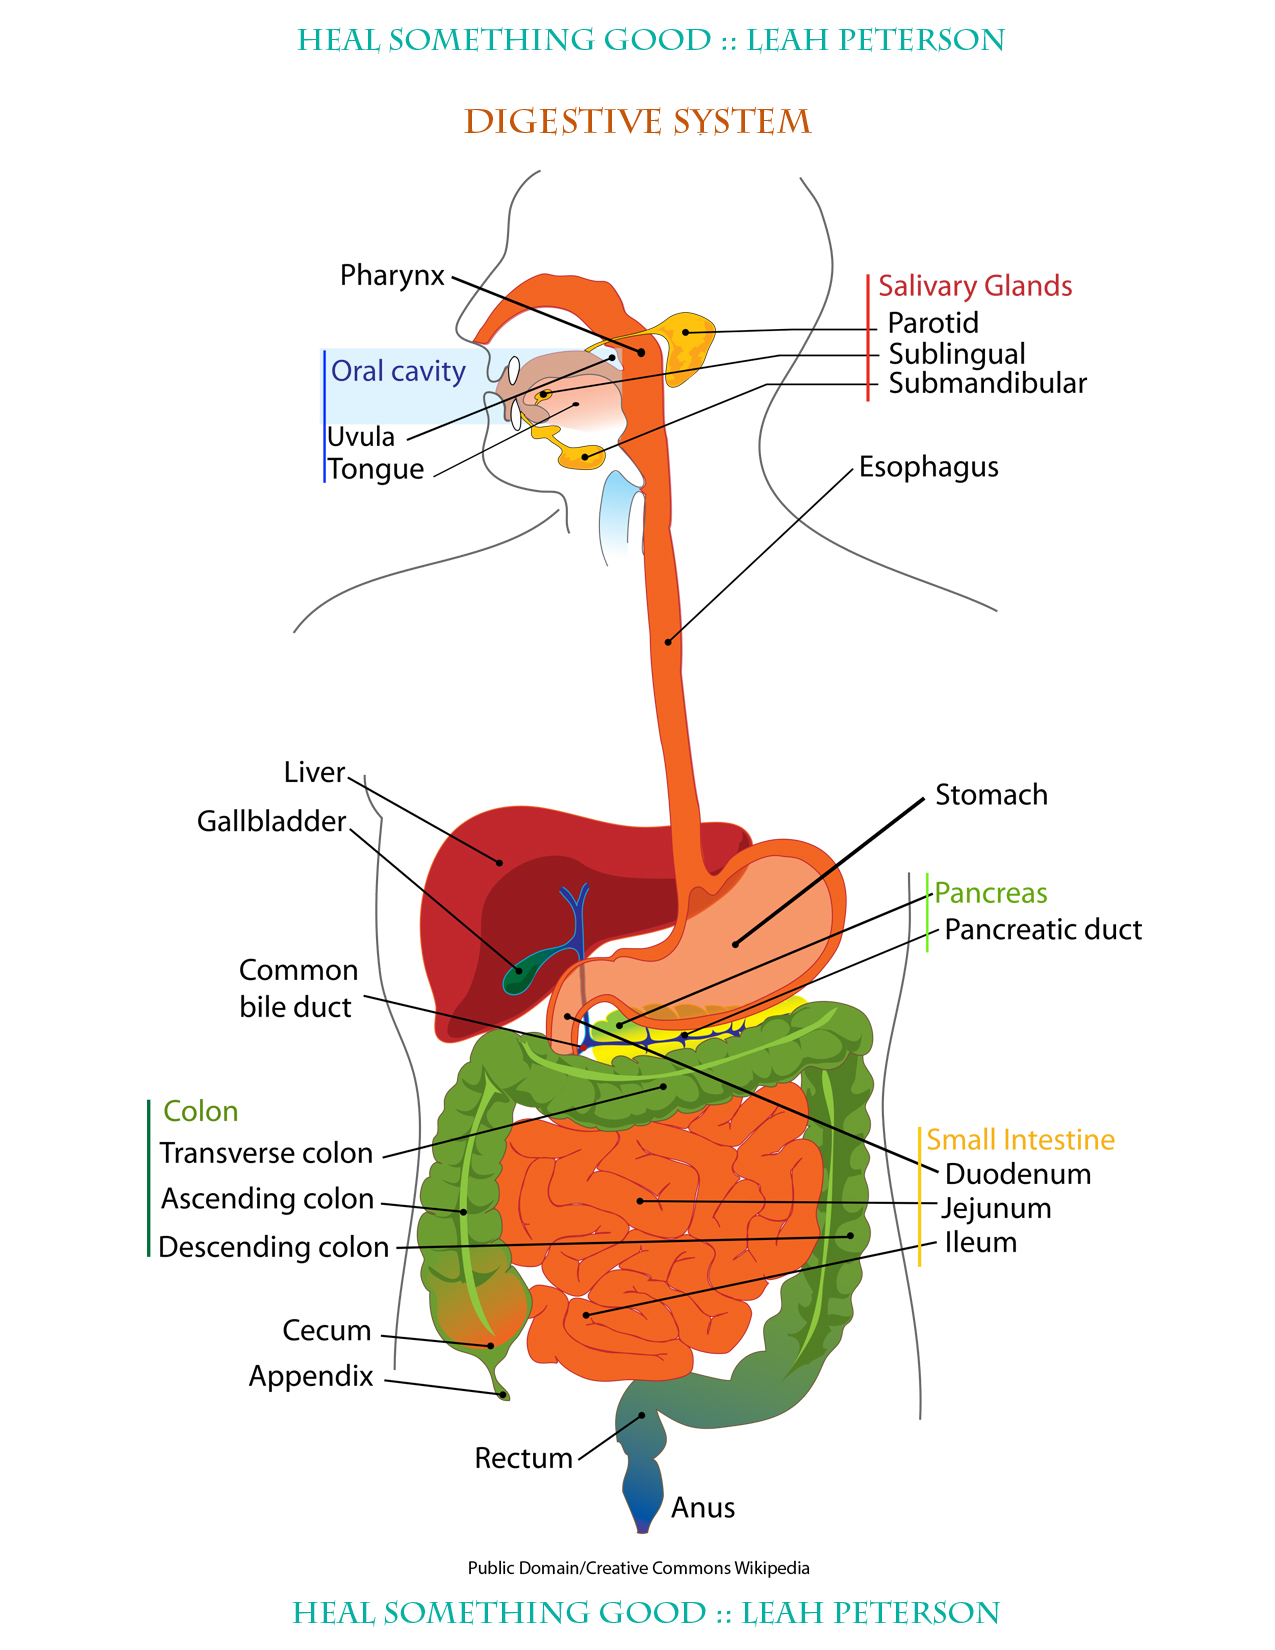 Chart Digestive System Heal Something Good